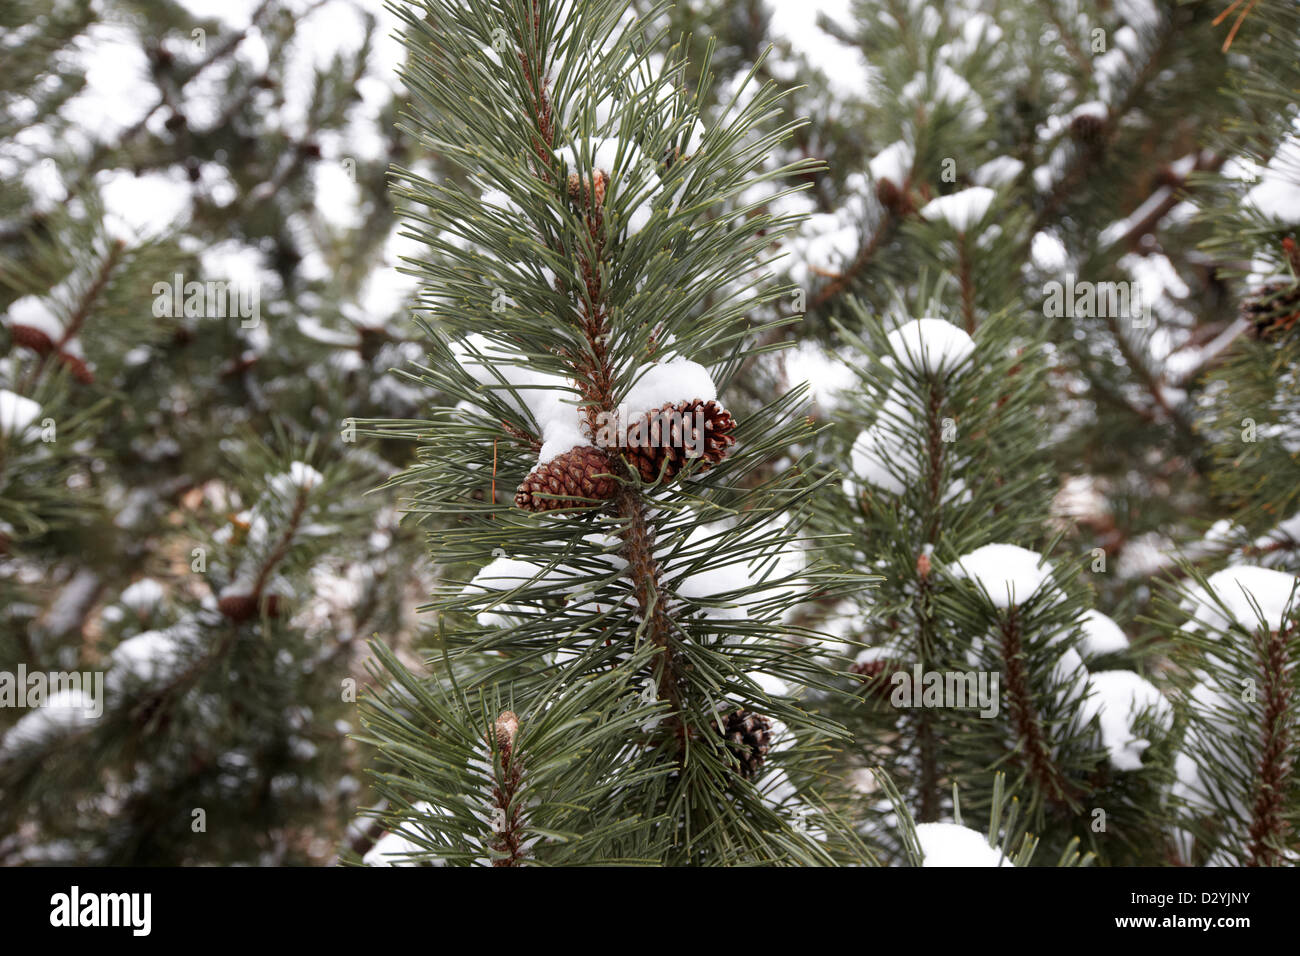 pine cones growing on fir trees in the snow Saskatoon Saskatchewan Canada Stock Photo